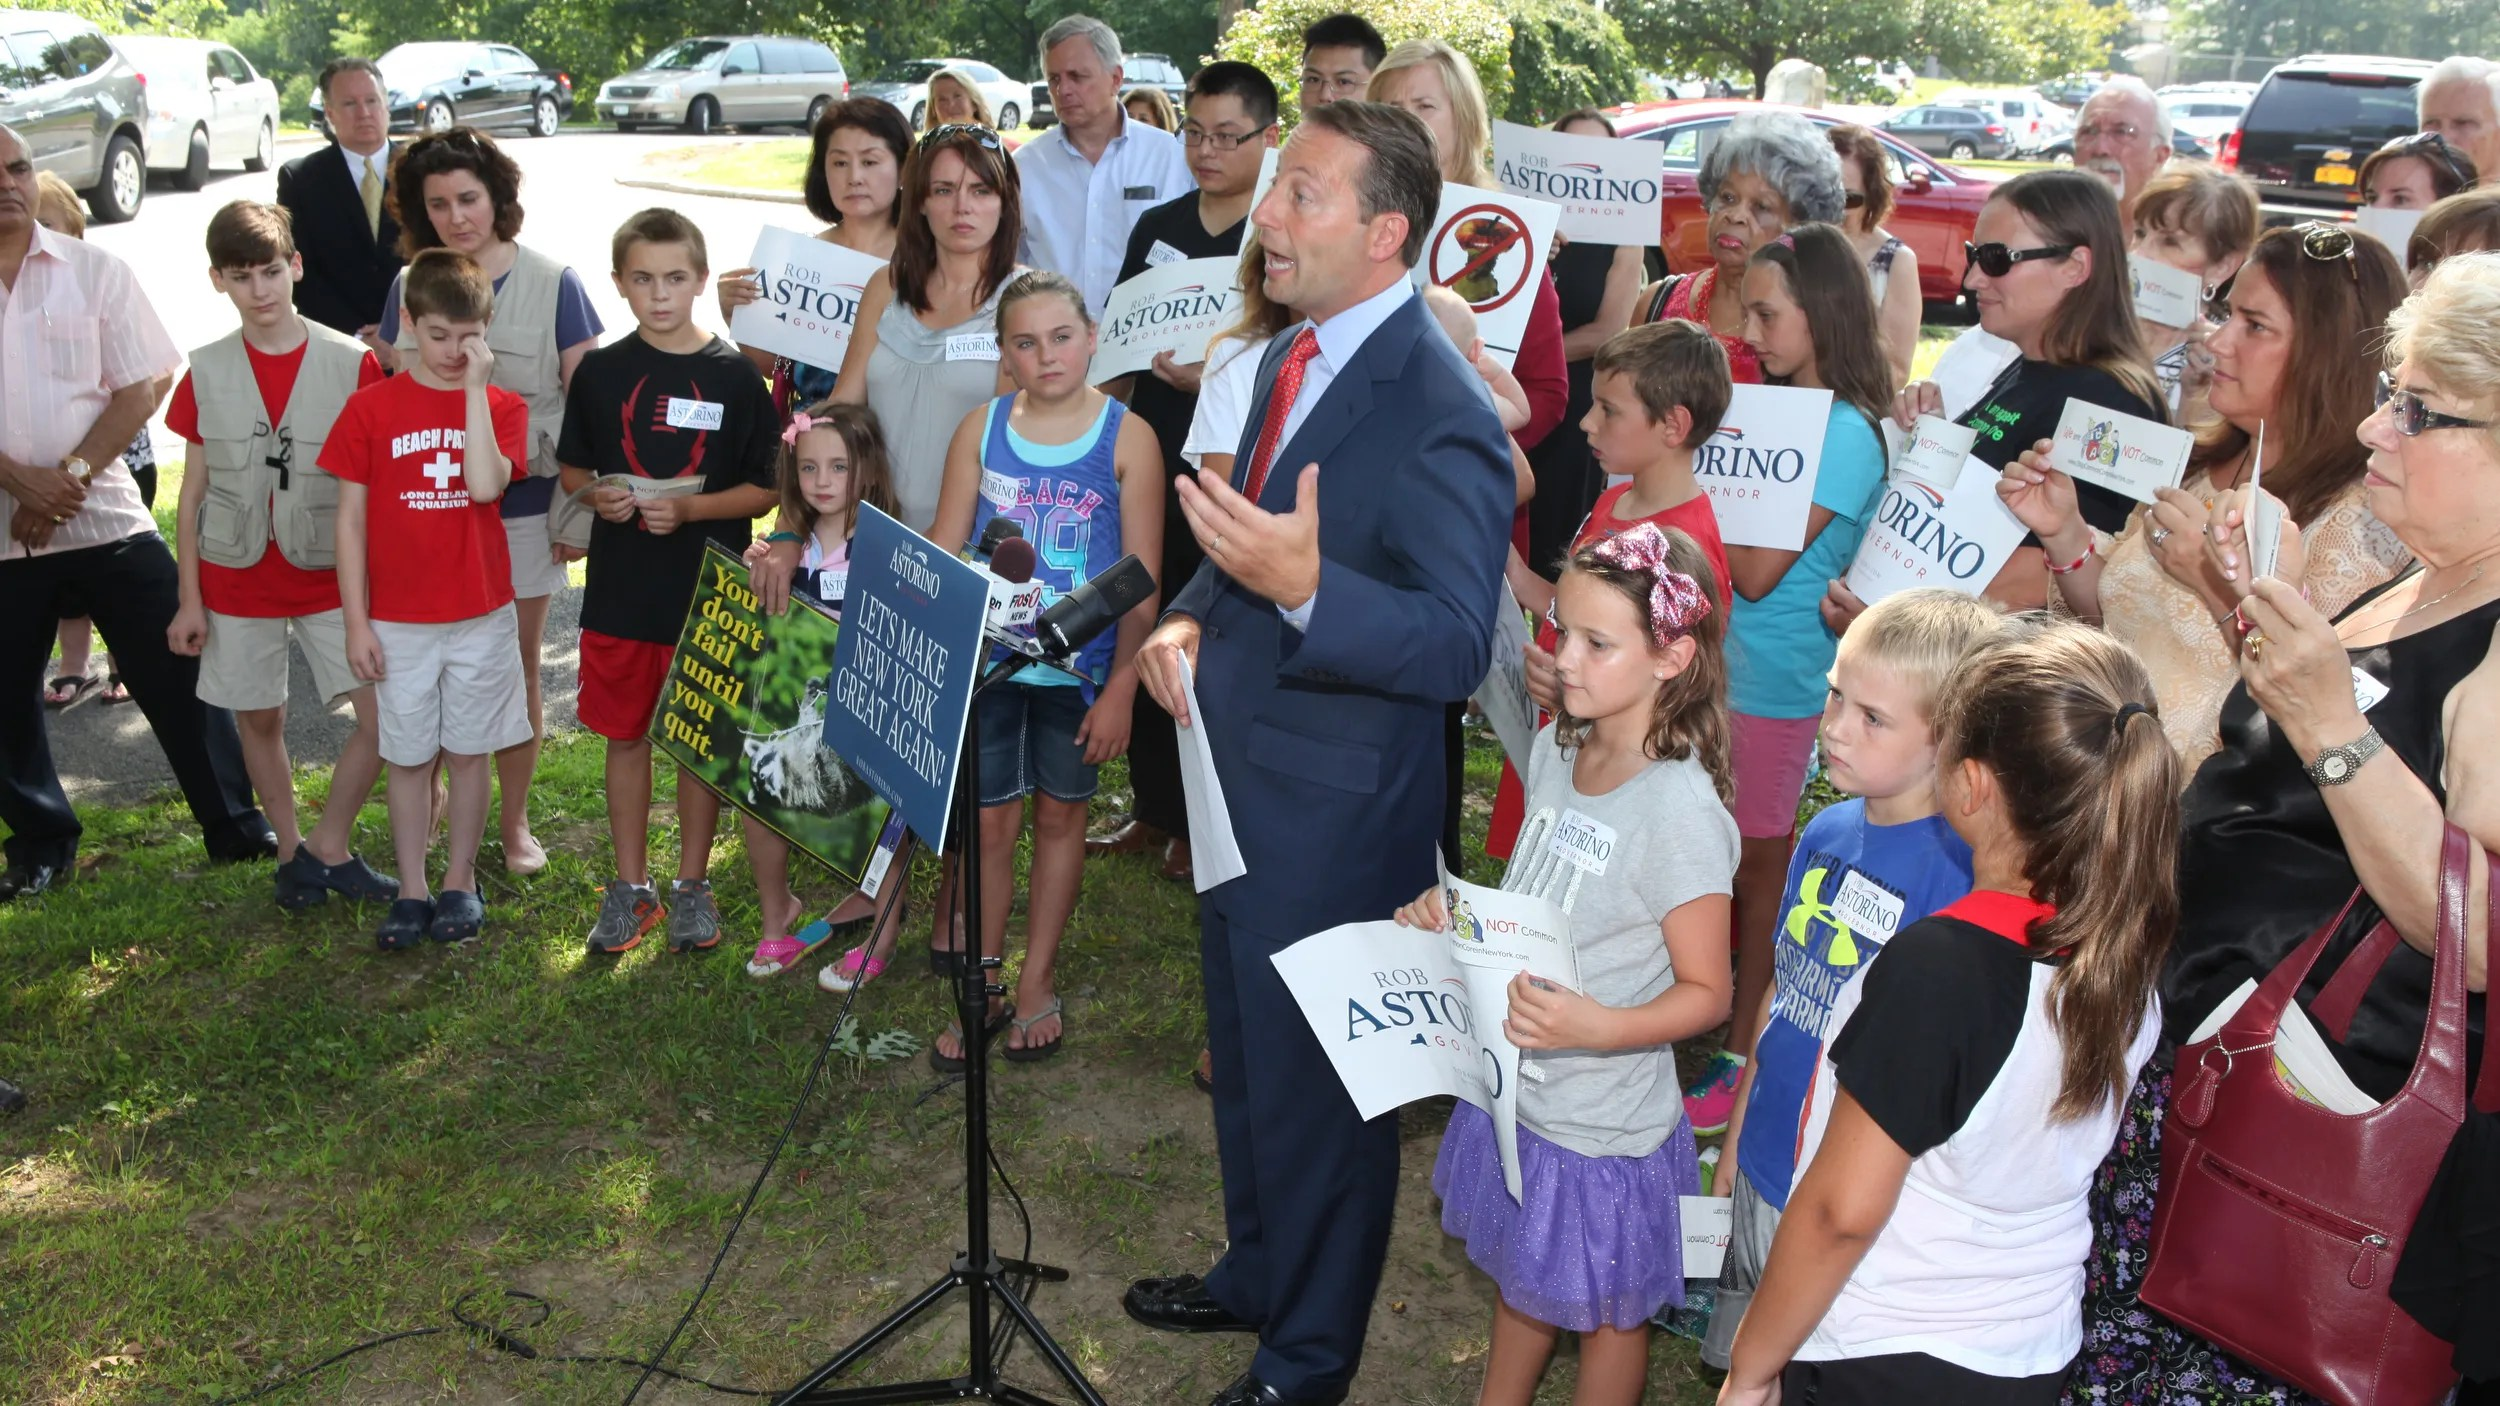 Astorino Common Core Elected Regents